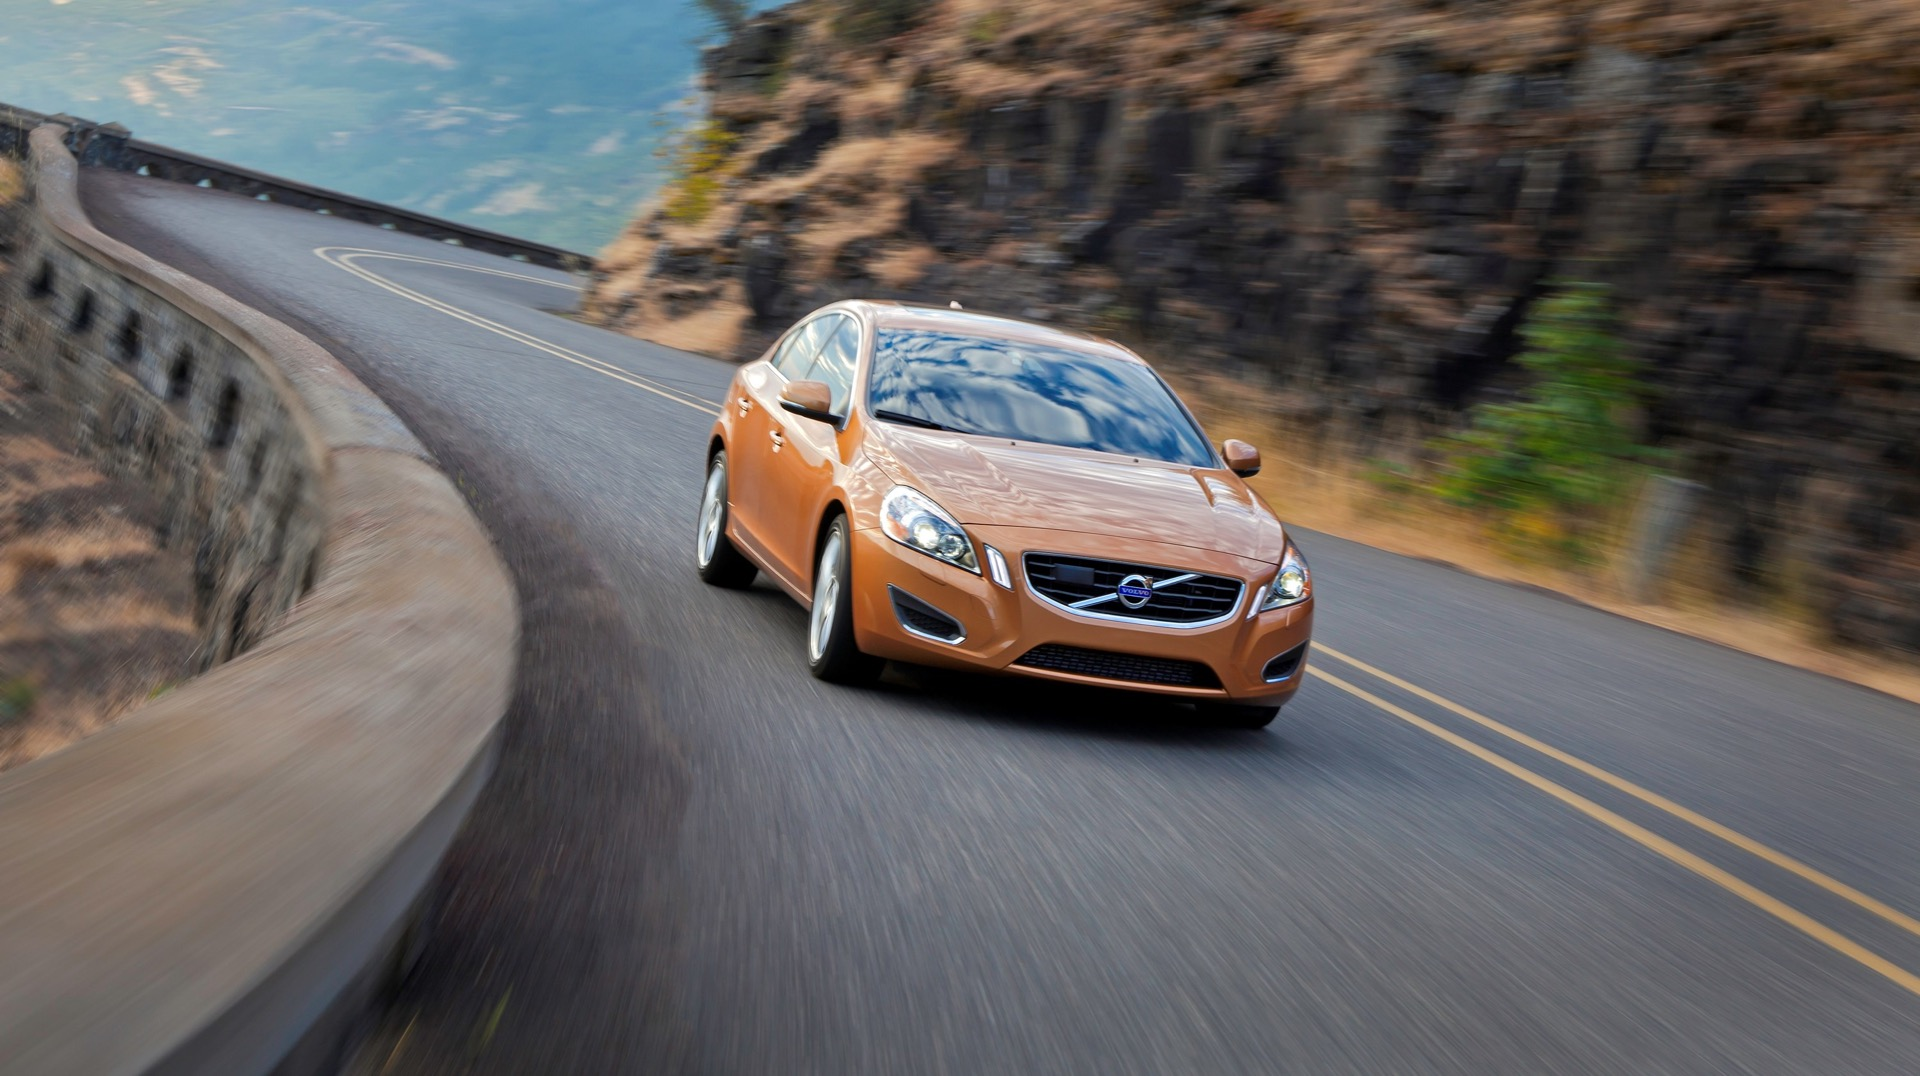 S60 T6 Awd Driving Action02 -  Volvo